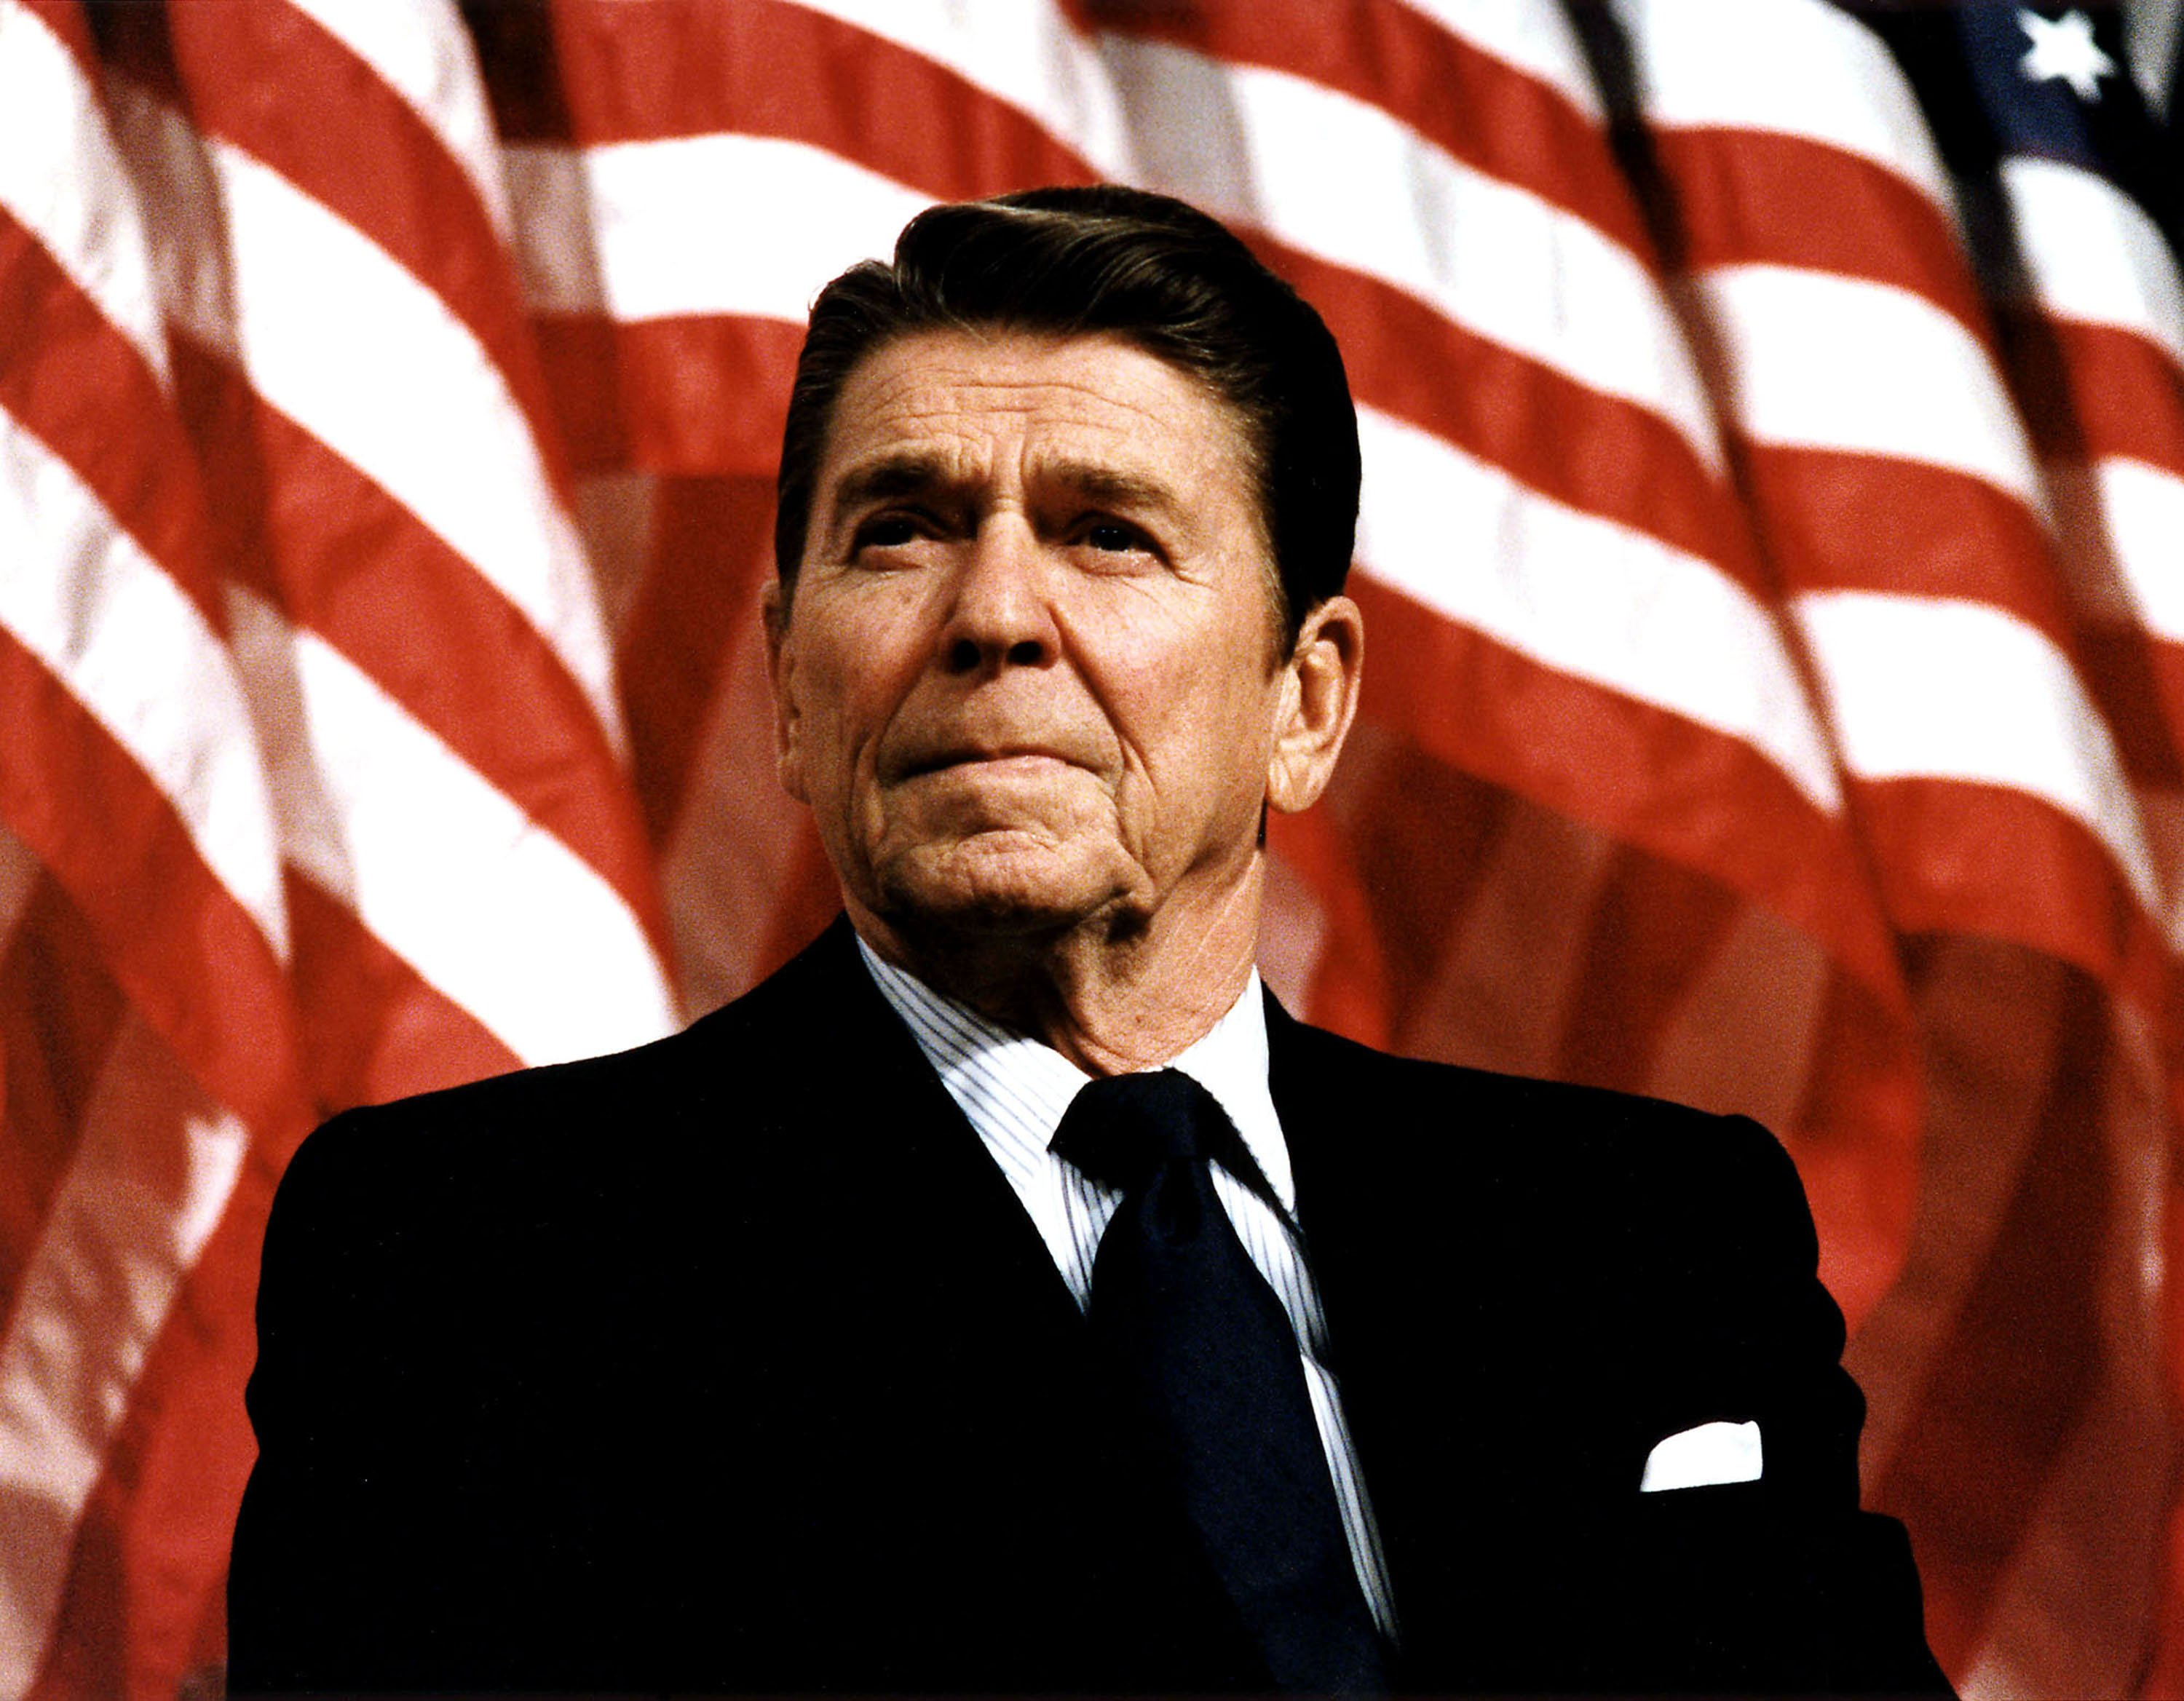 President Ronald Reagan at Durenberger Republican convention Rally, 1982.   Source: Getty Images